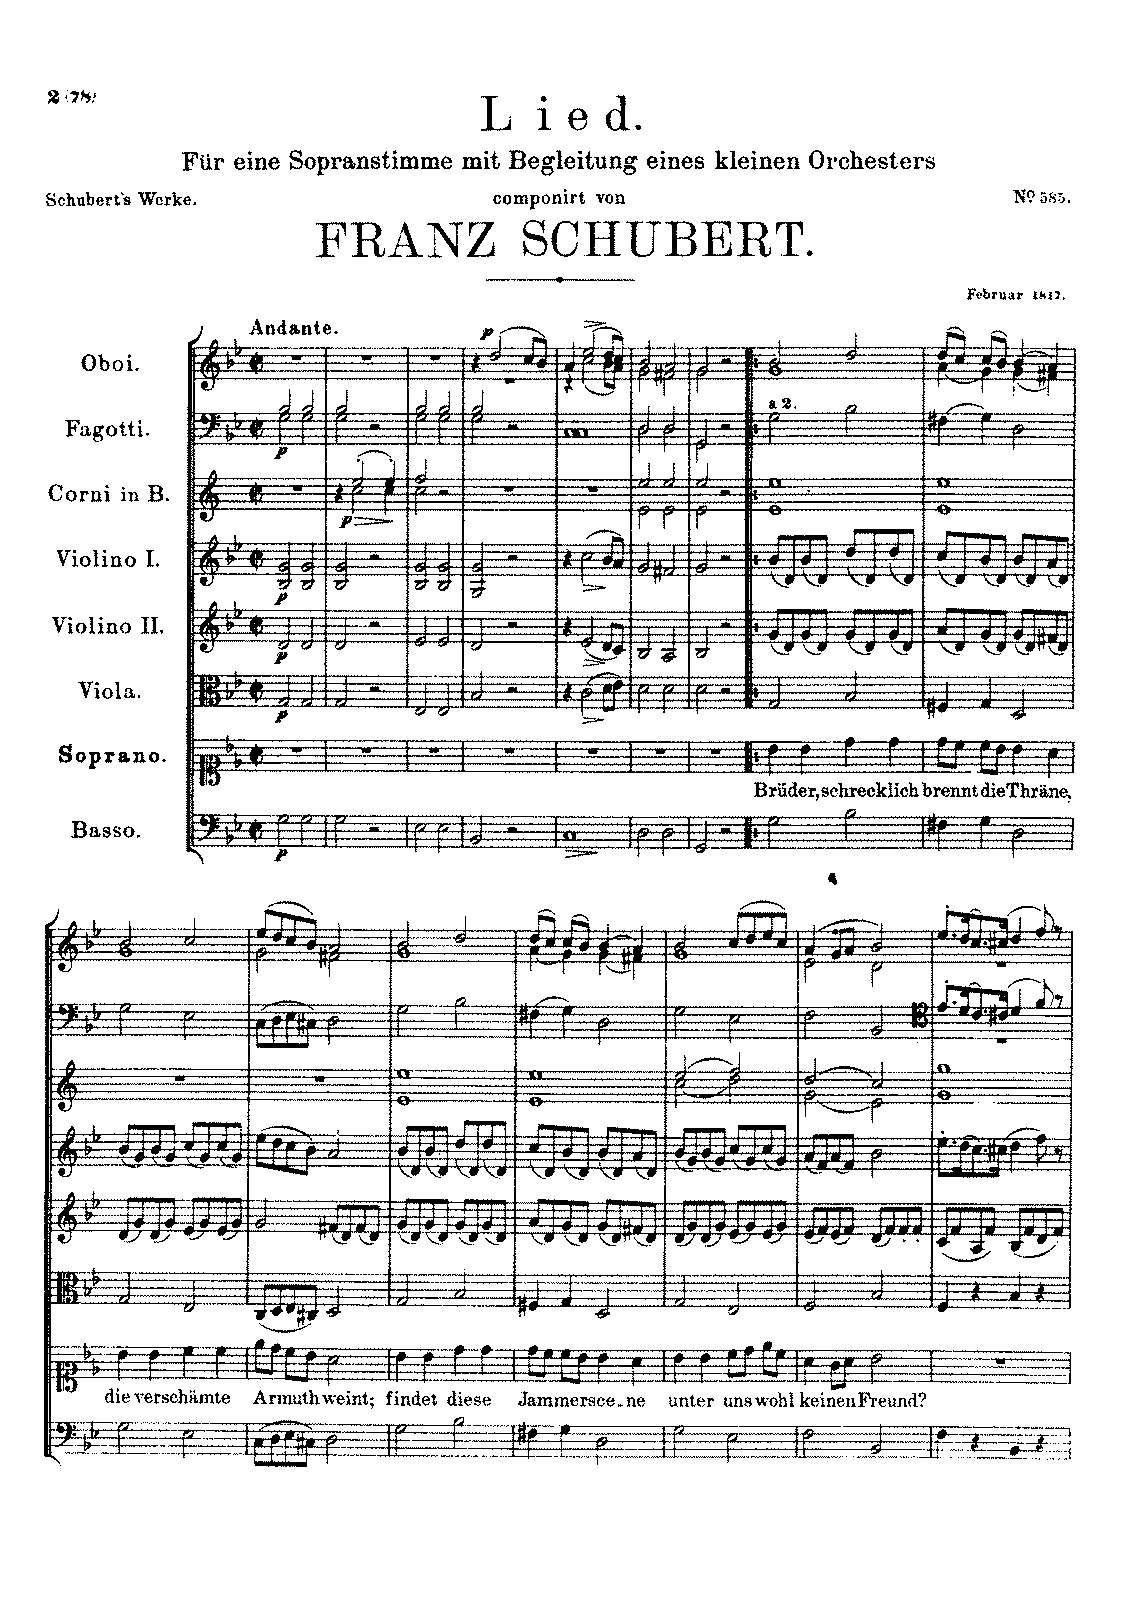 SchubertD535 Lied (with small orchestra).pdf